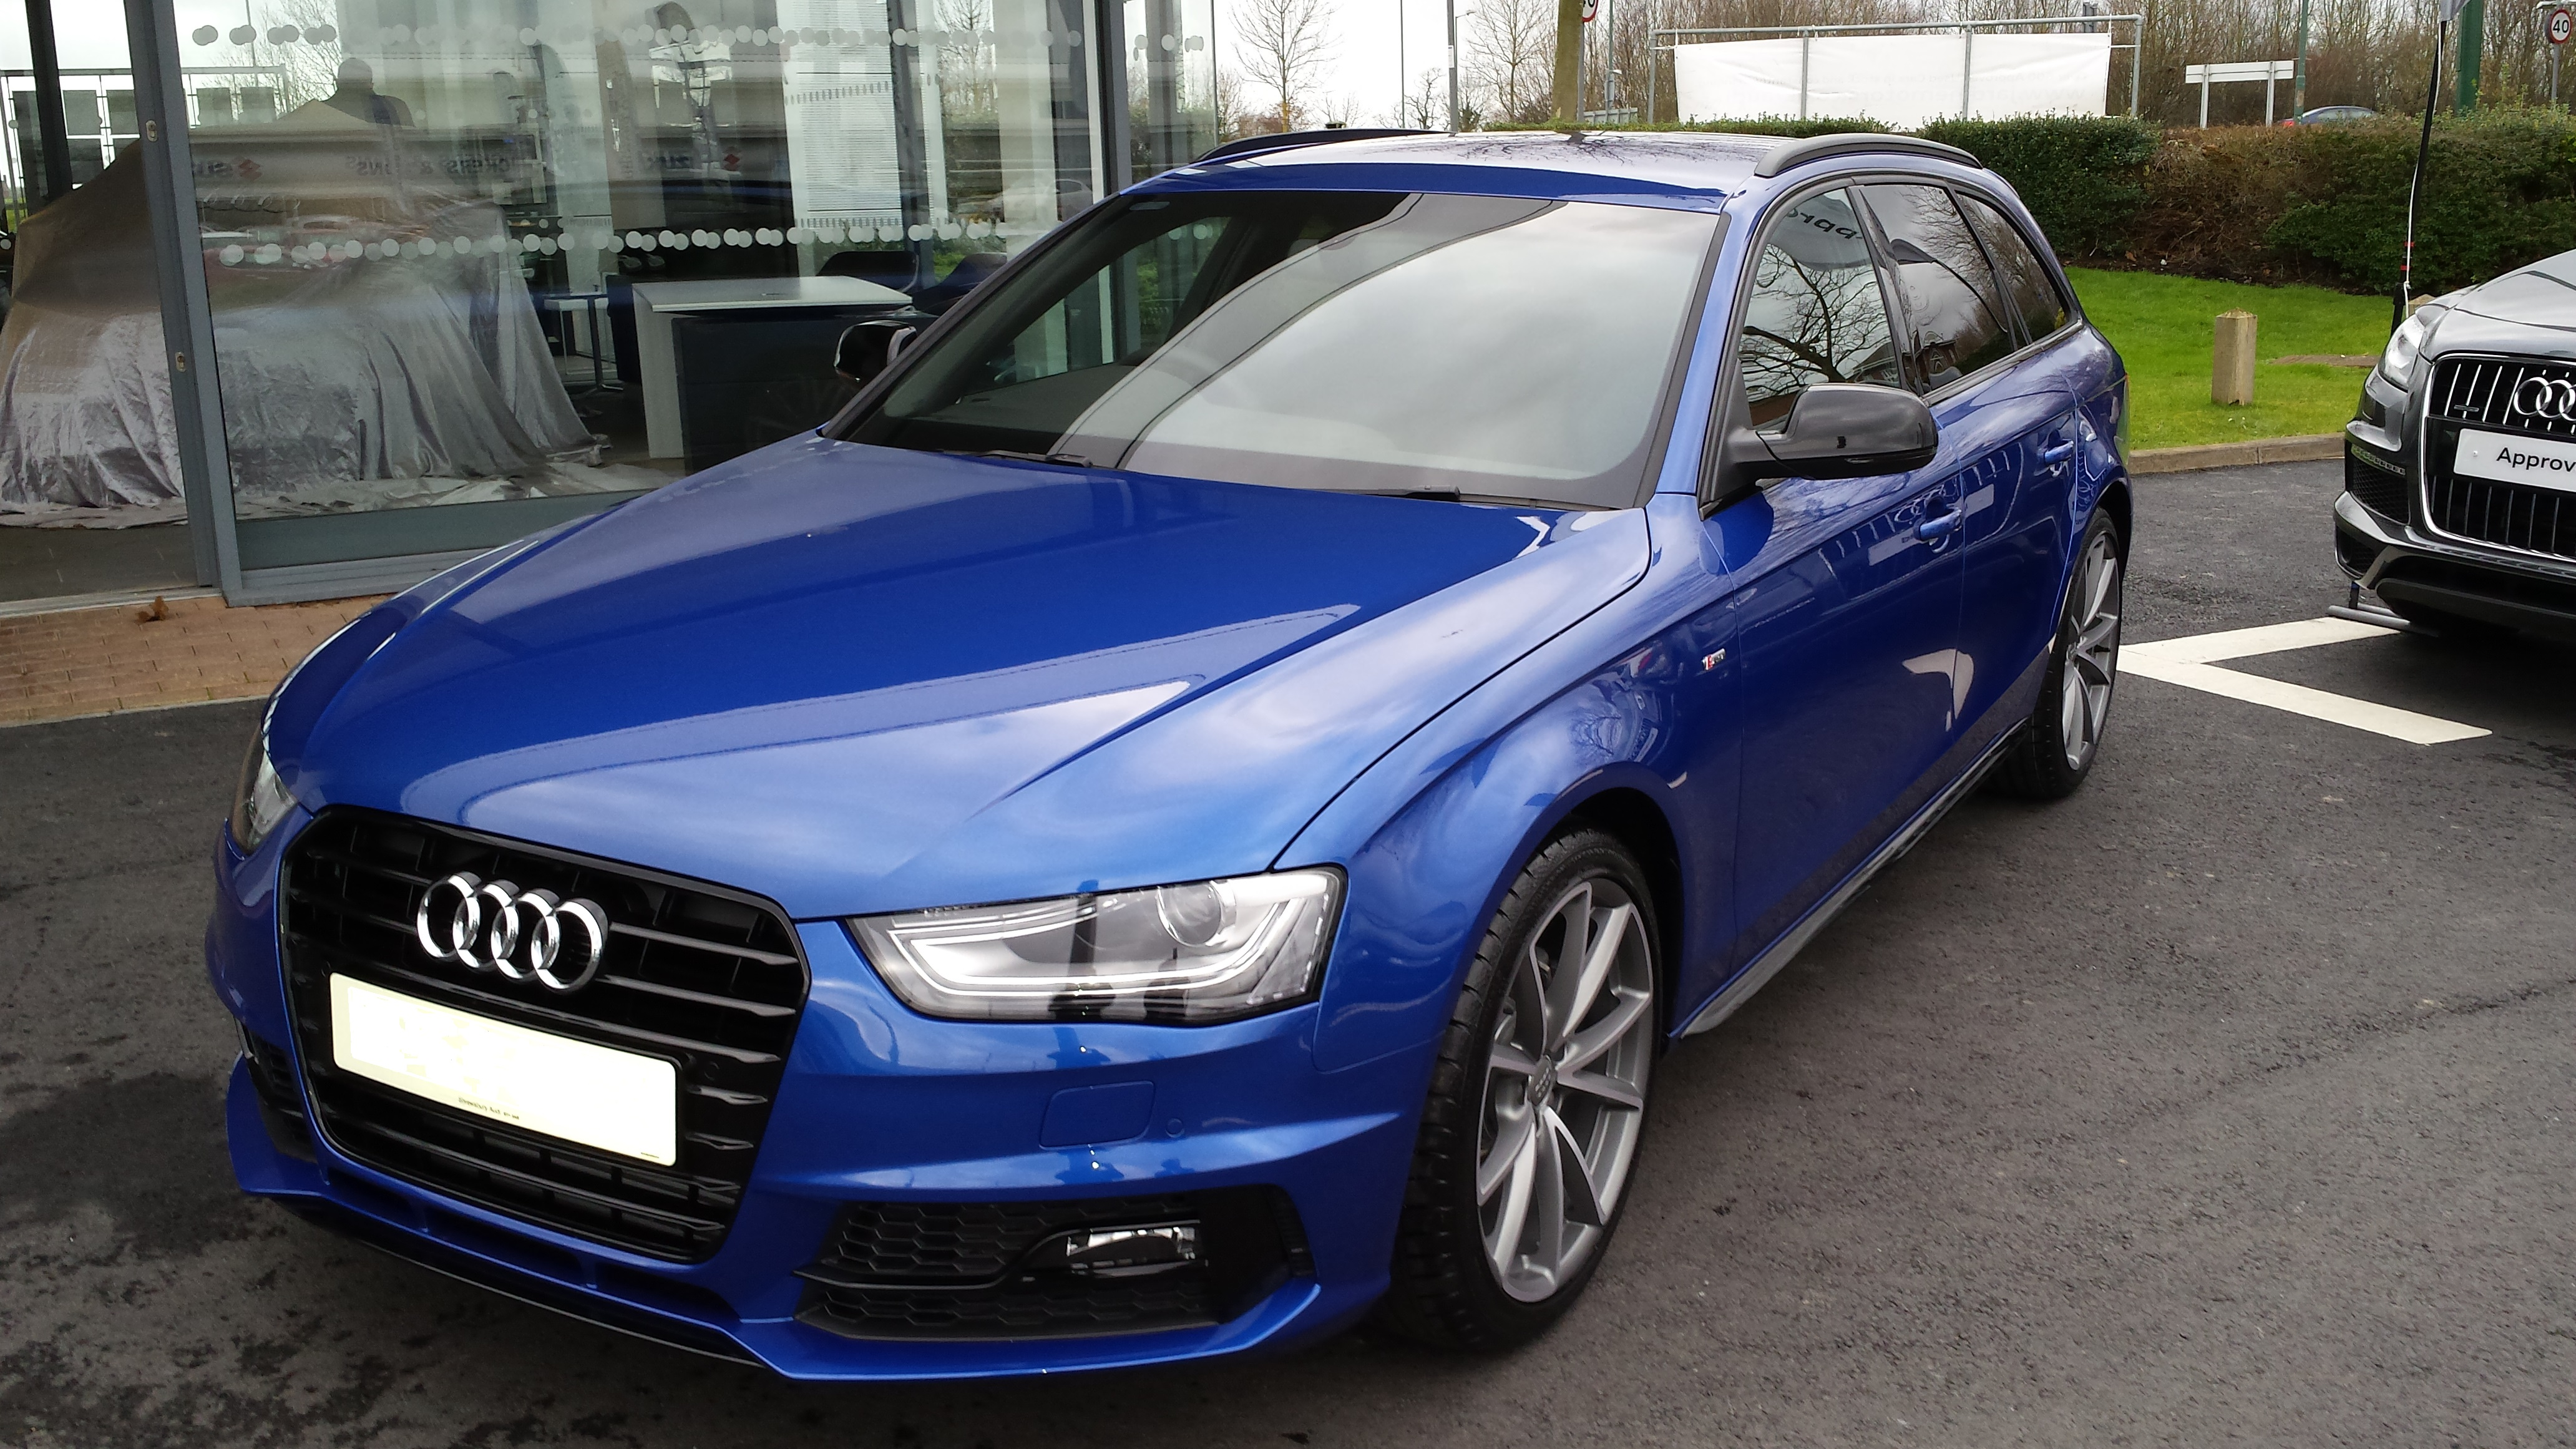 Audi a5 20 tdi review